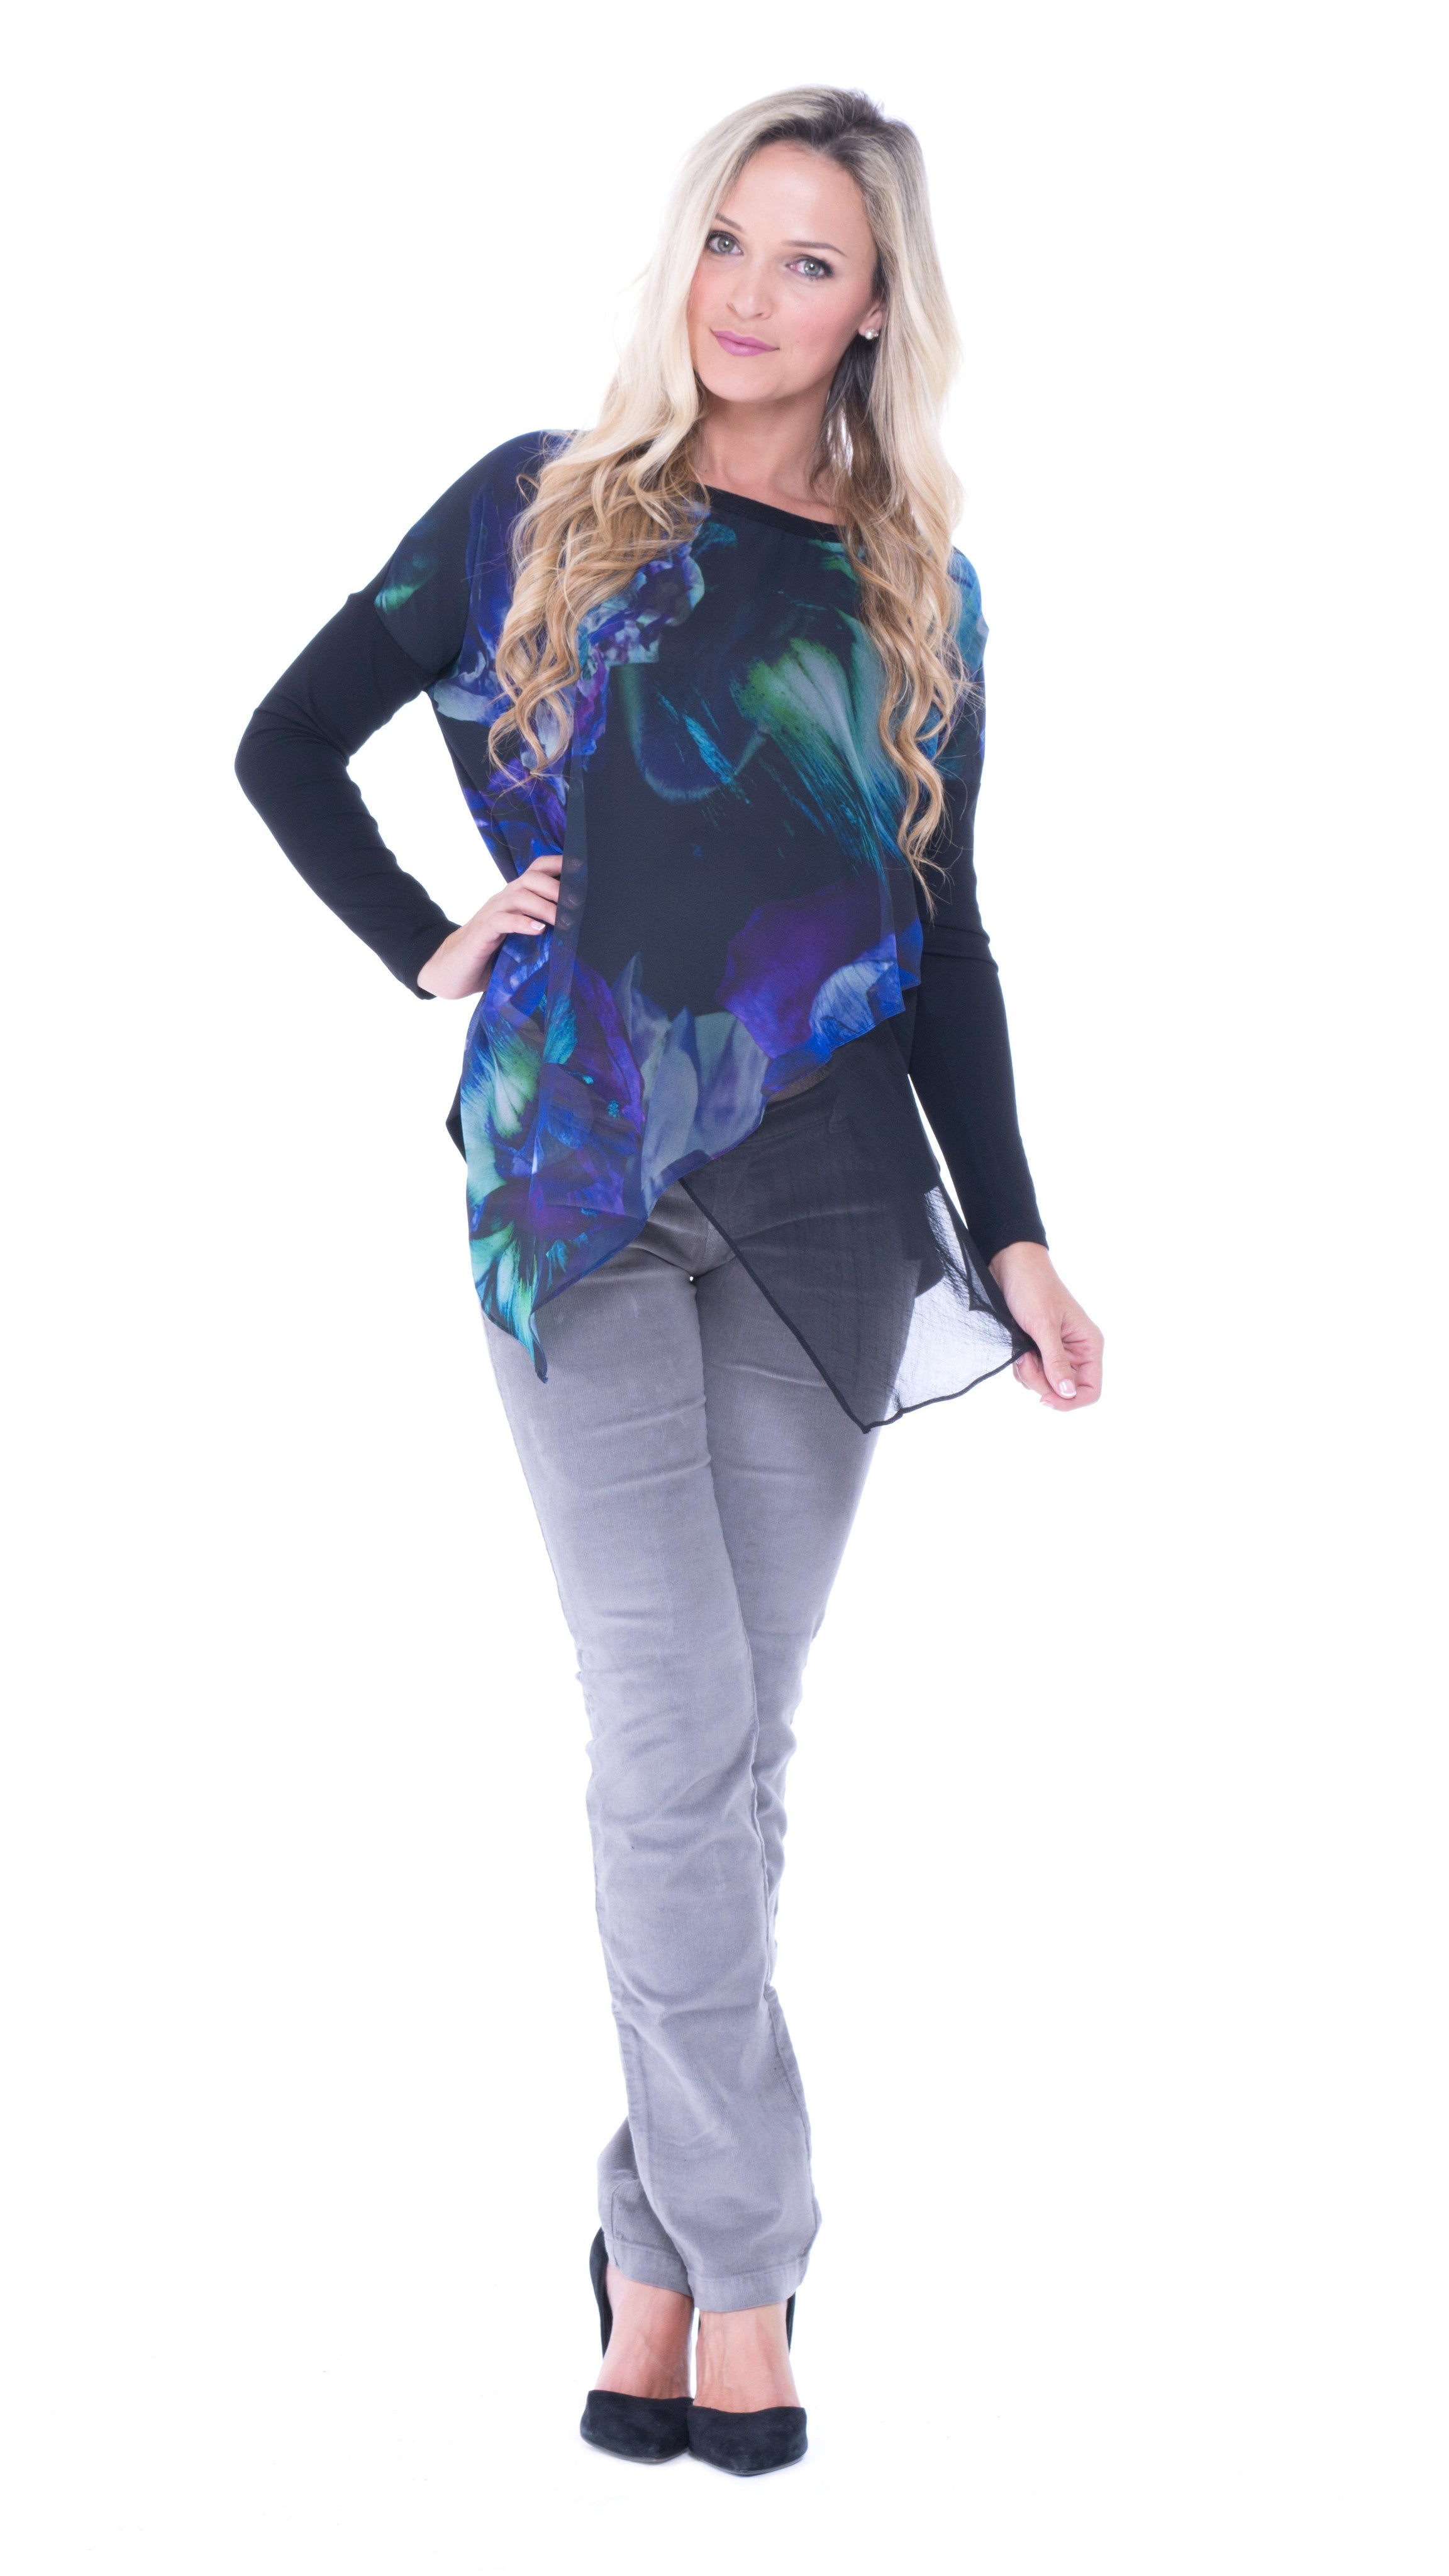 Olian maternity is fashionable designer clothing for the mother-to ...